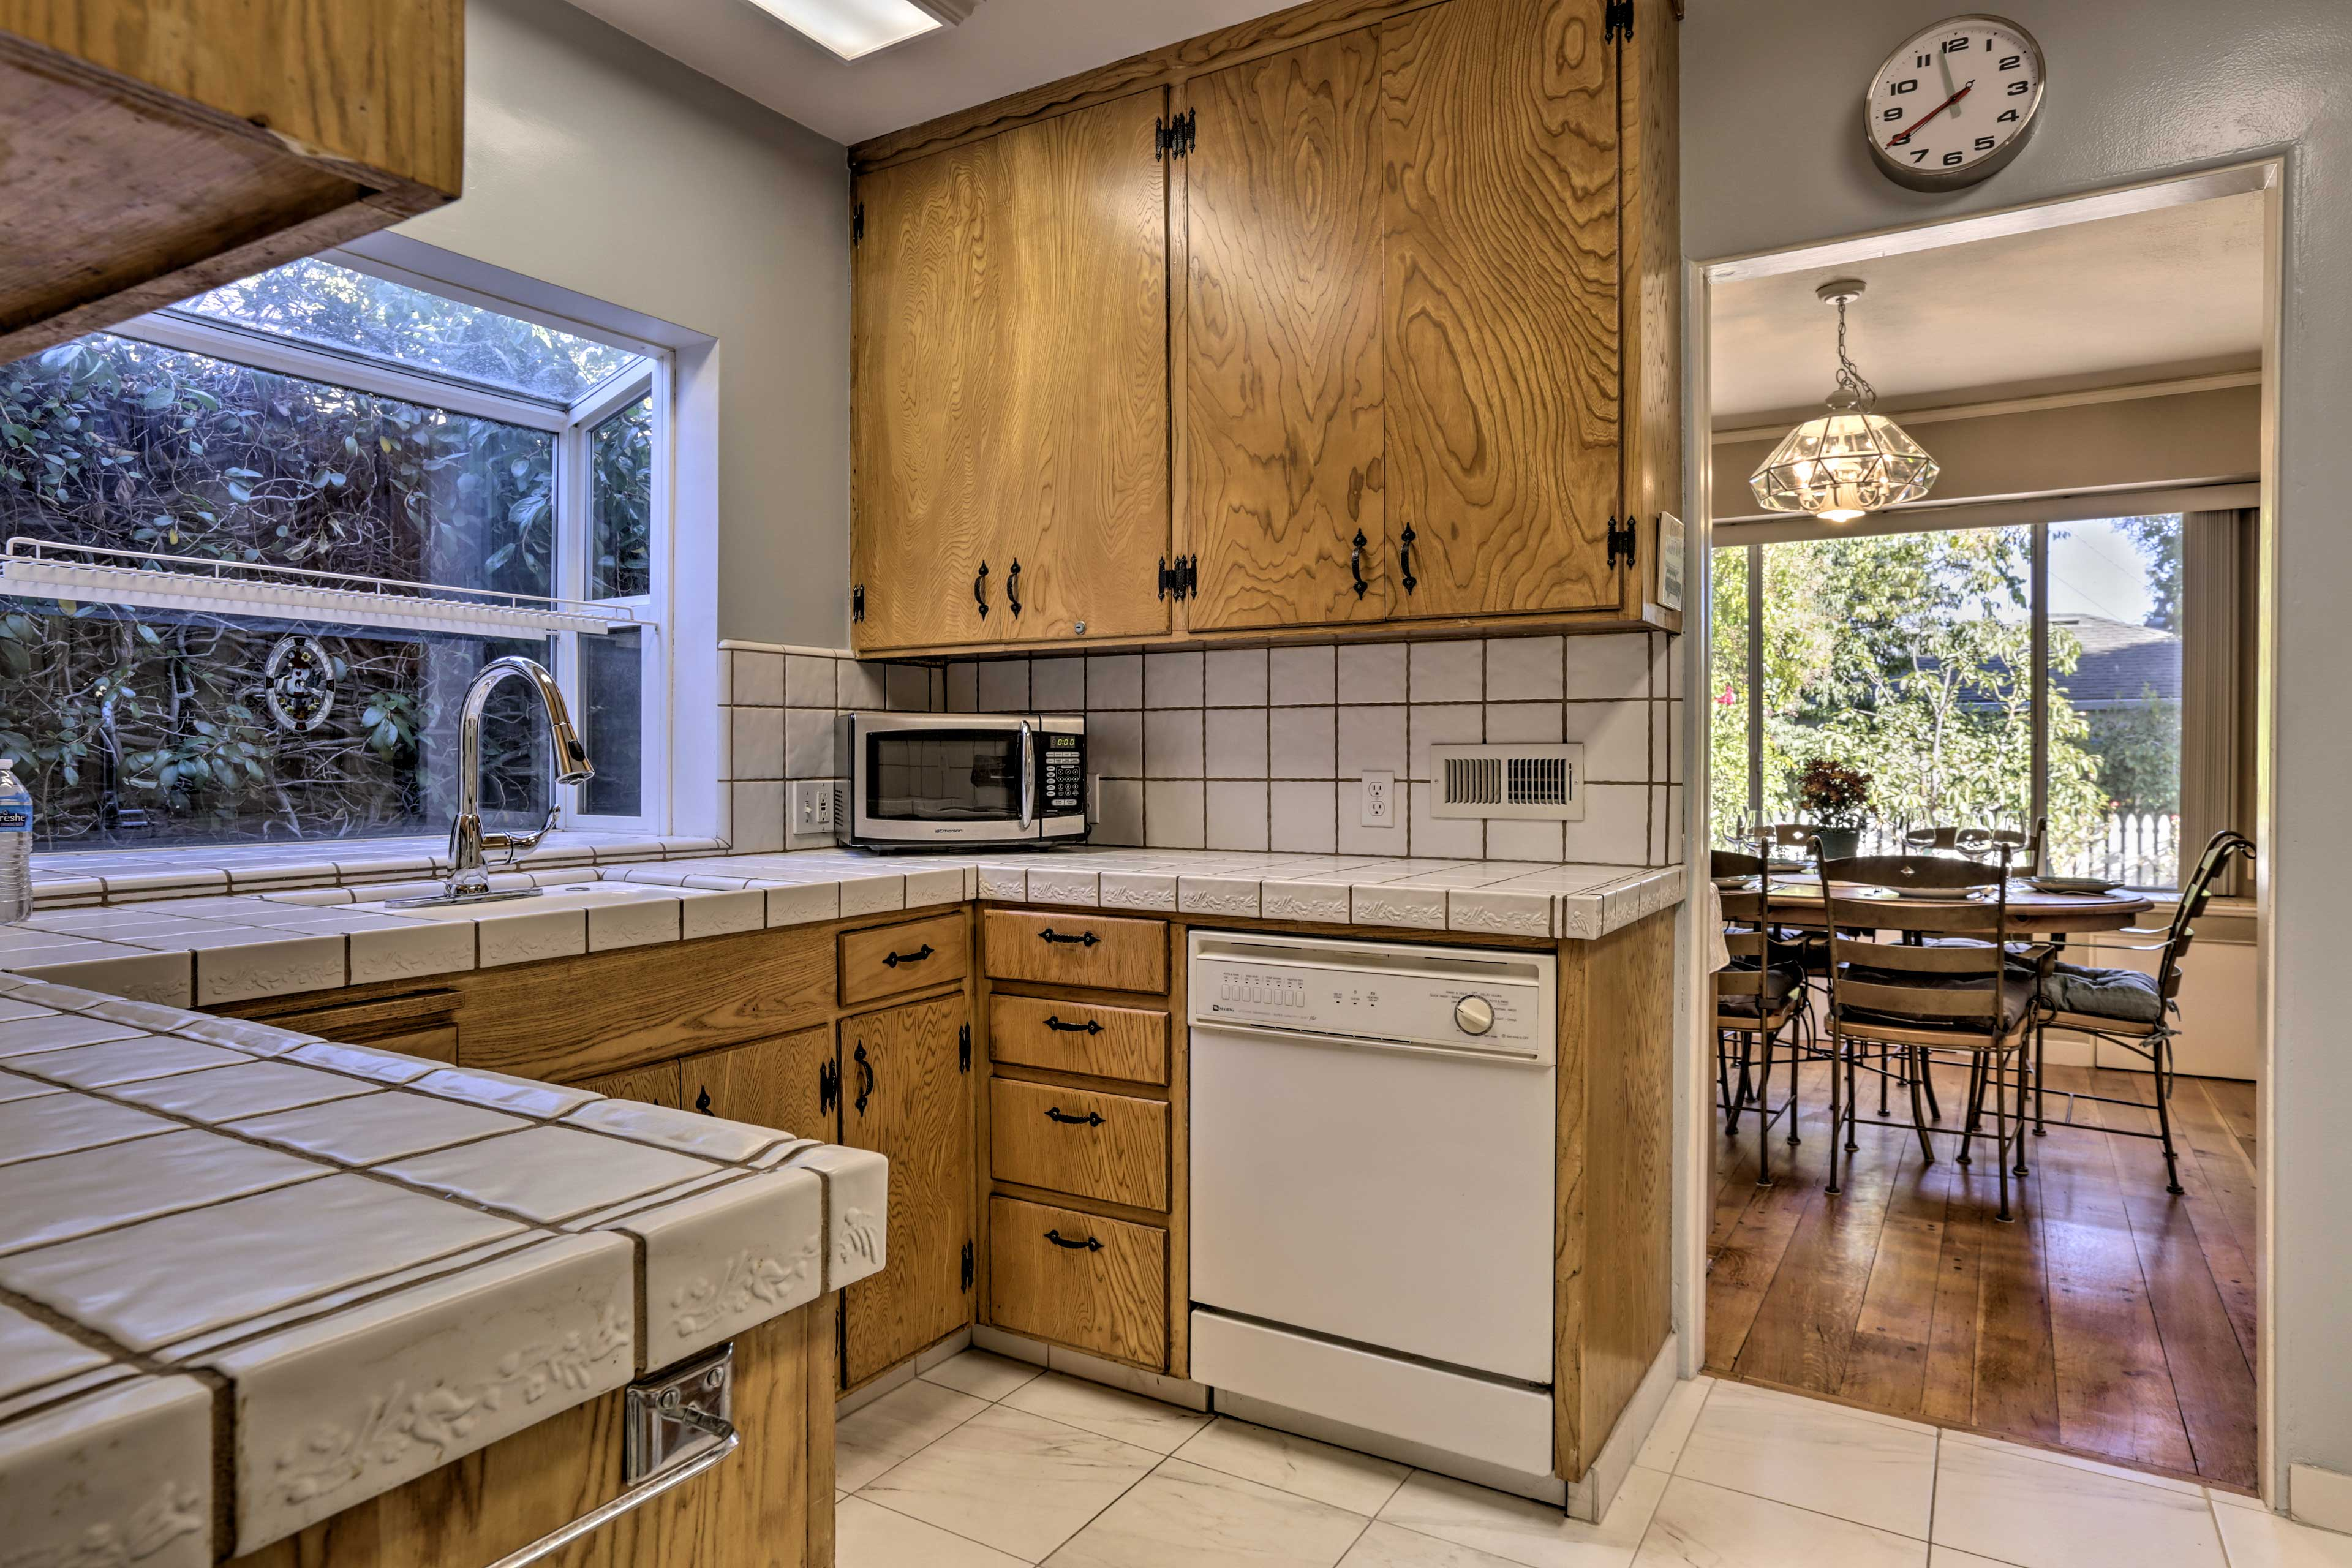 Step into the fully equipped kitchen and get cooking!